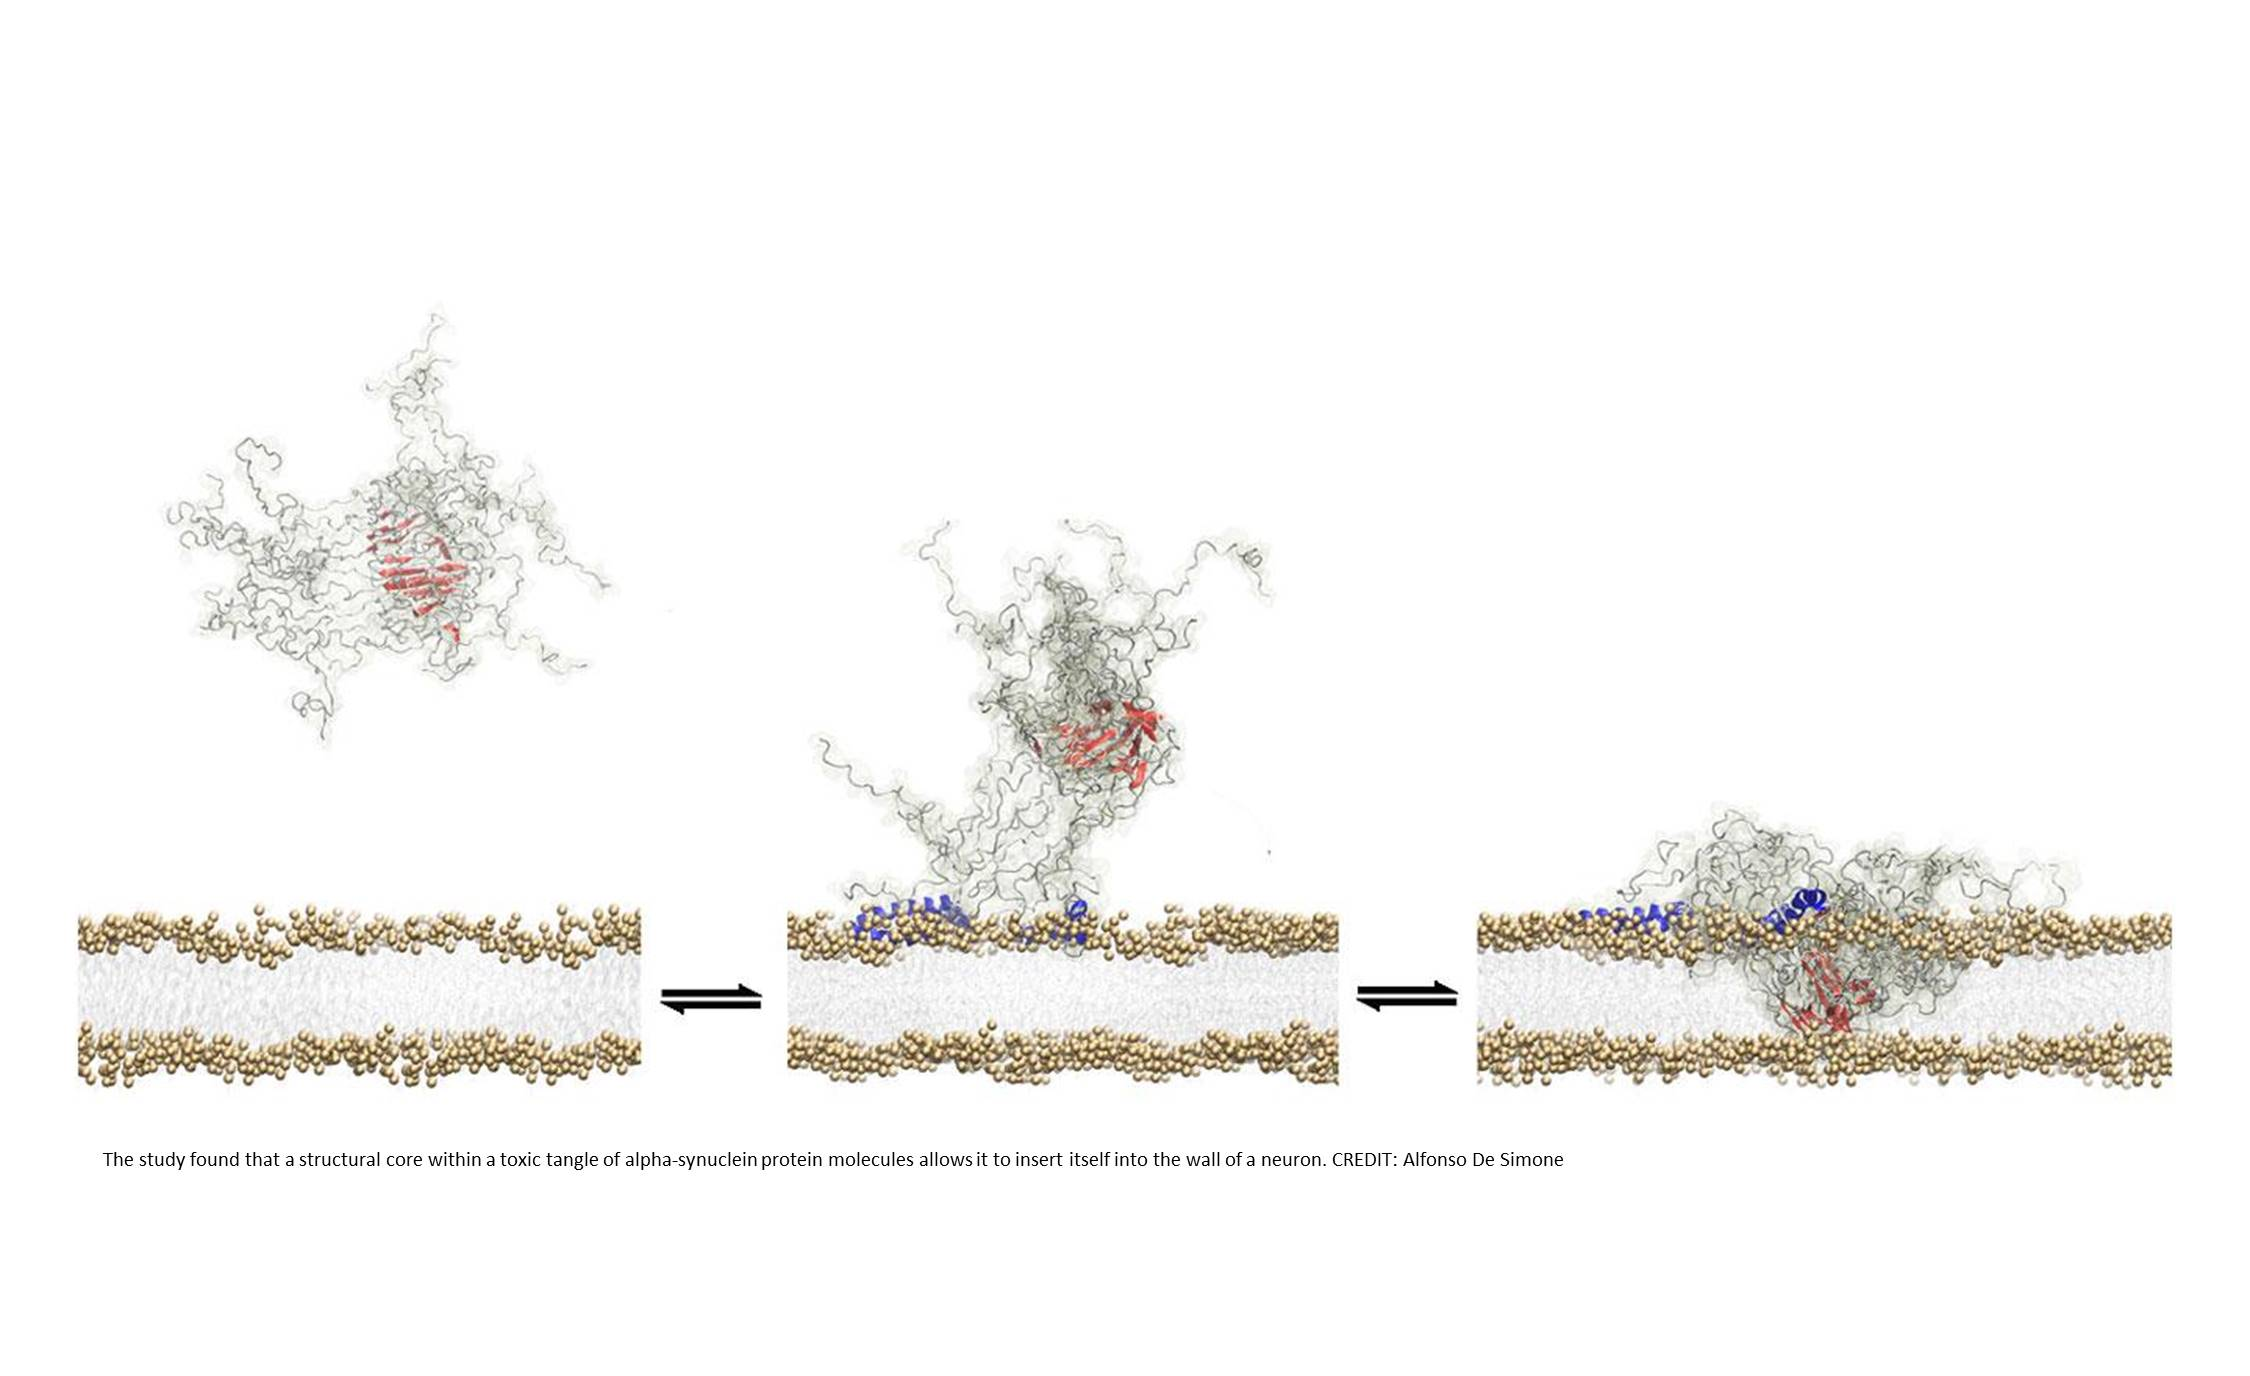 Visualizing membrane disruption by Parkinson's disease protein